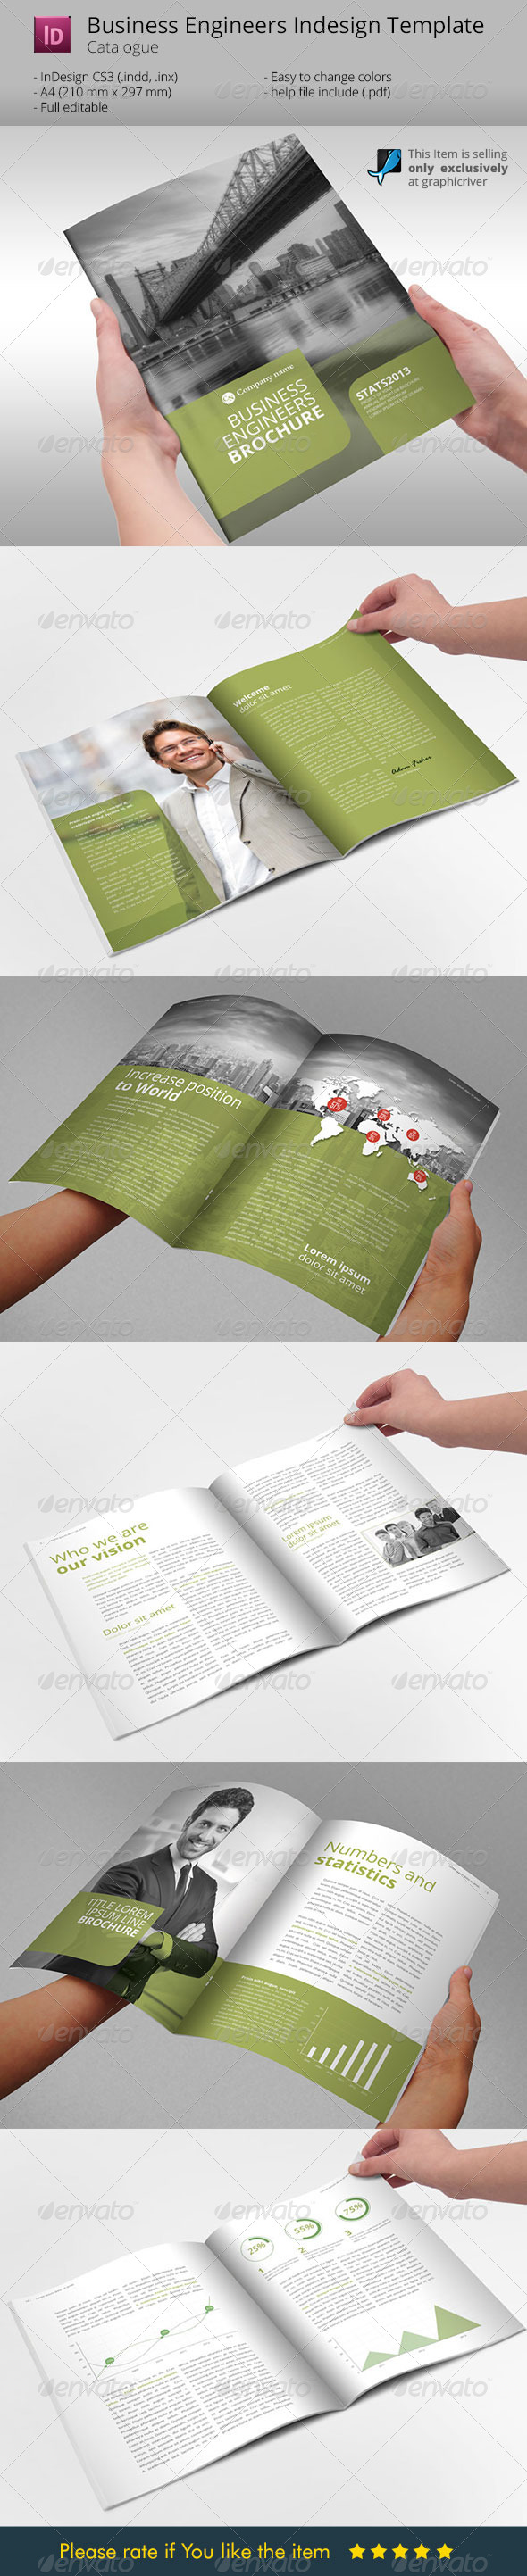 GraphicRiver Business Engineers Green Indesign Template 6121871